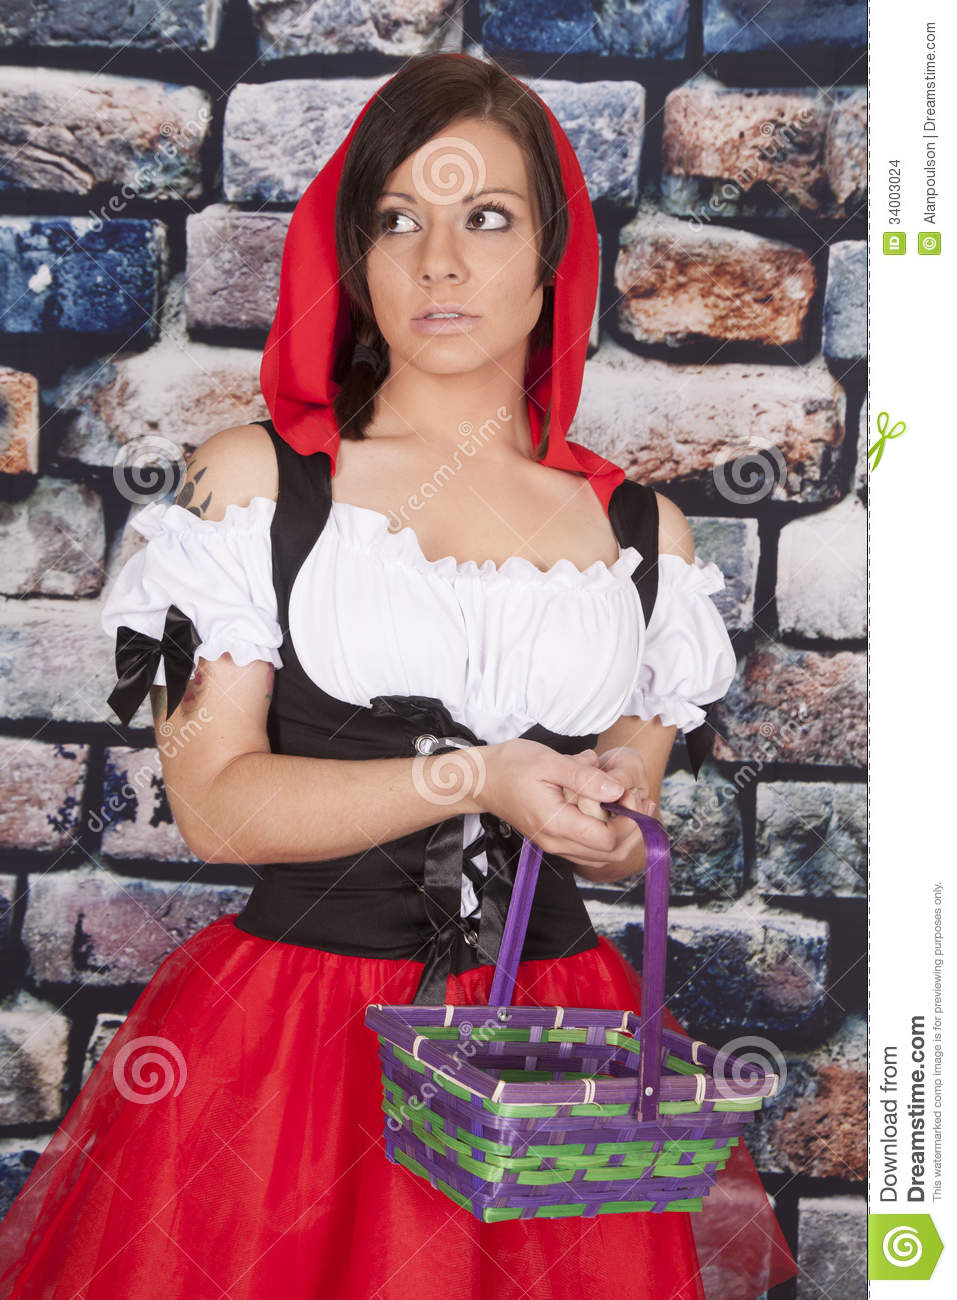 Woman red riding hood basket look scared